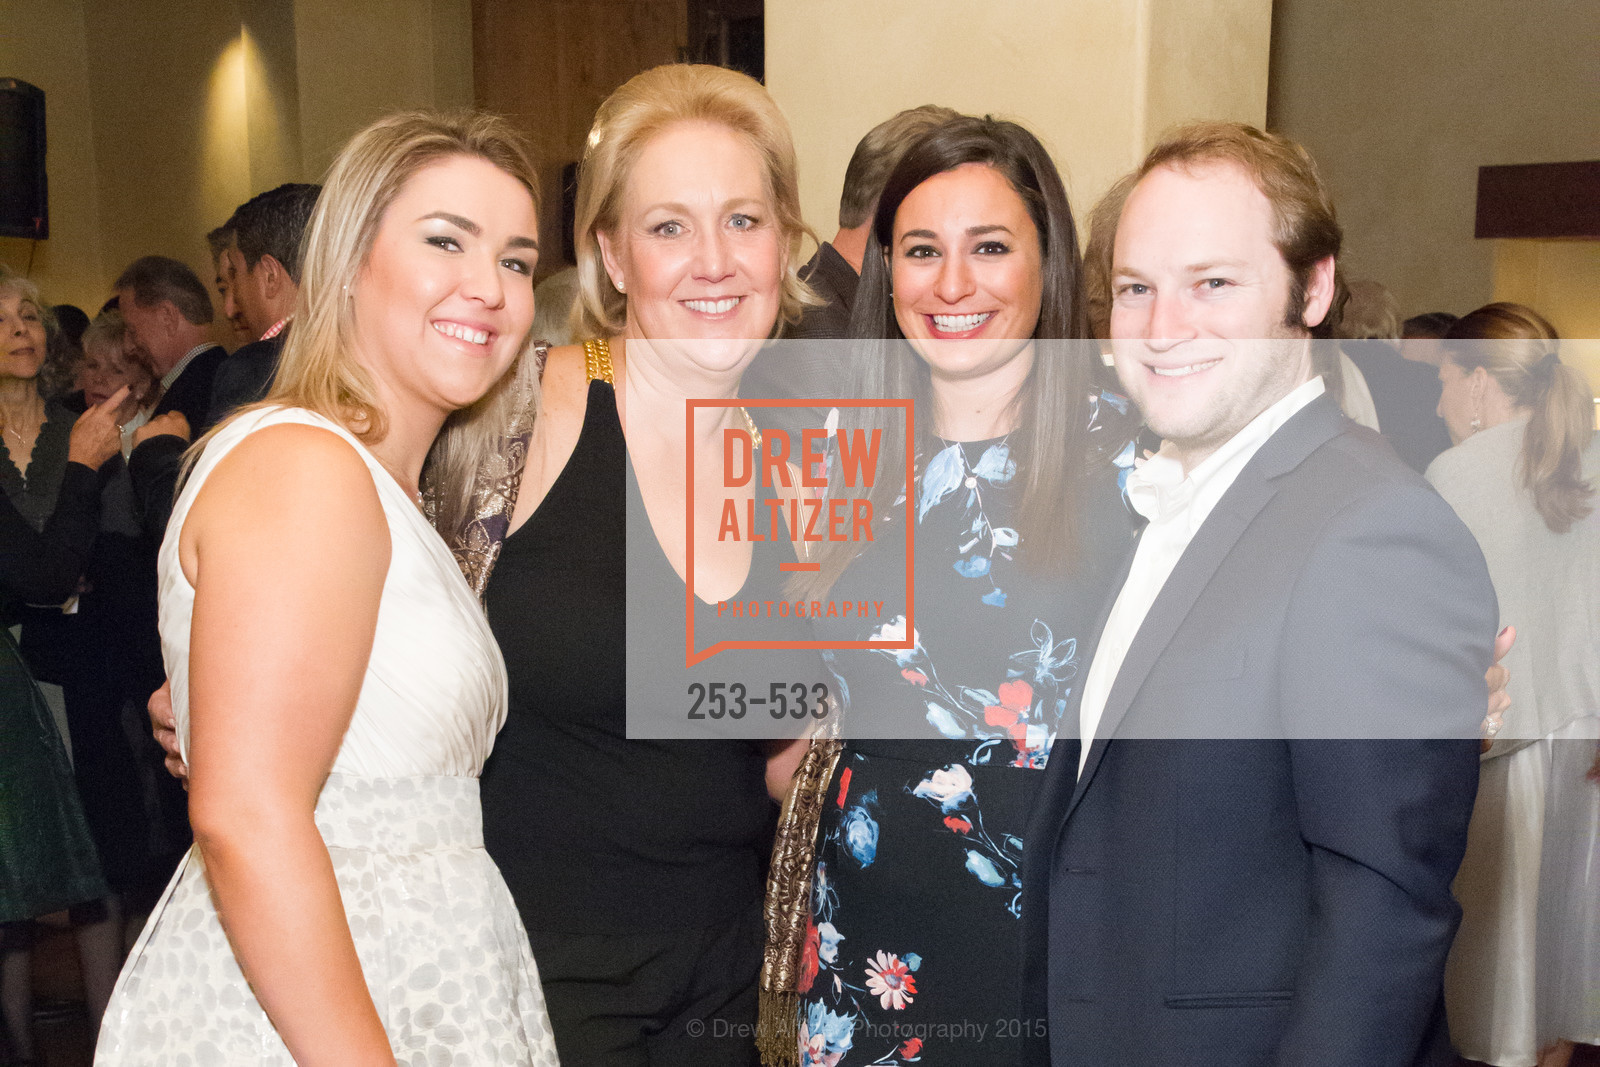 Stephanie Gumas, Janice Gumas, Christina Padis, Michael Ritter, Hellenic Charity Ball Cocktail Reception, Kokkari. 200 Jackson St, San Francisco, CA 94111, November 13th, 2015,Drew Altizer, Drew Altizer Photography, full-service event agency, private events, San Francisco photographer, photographer California